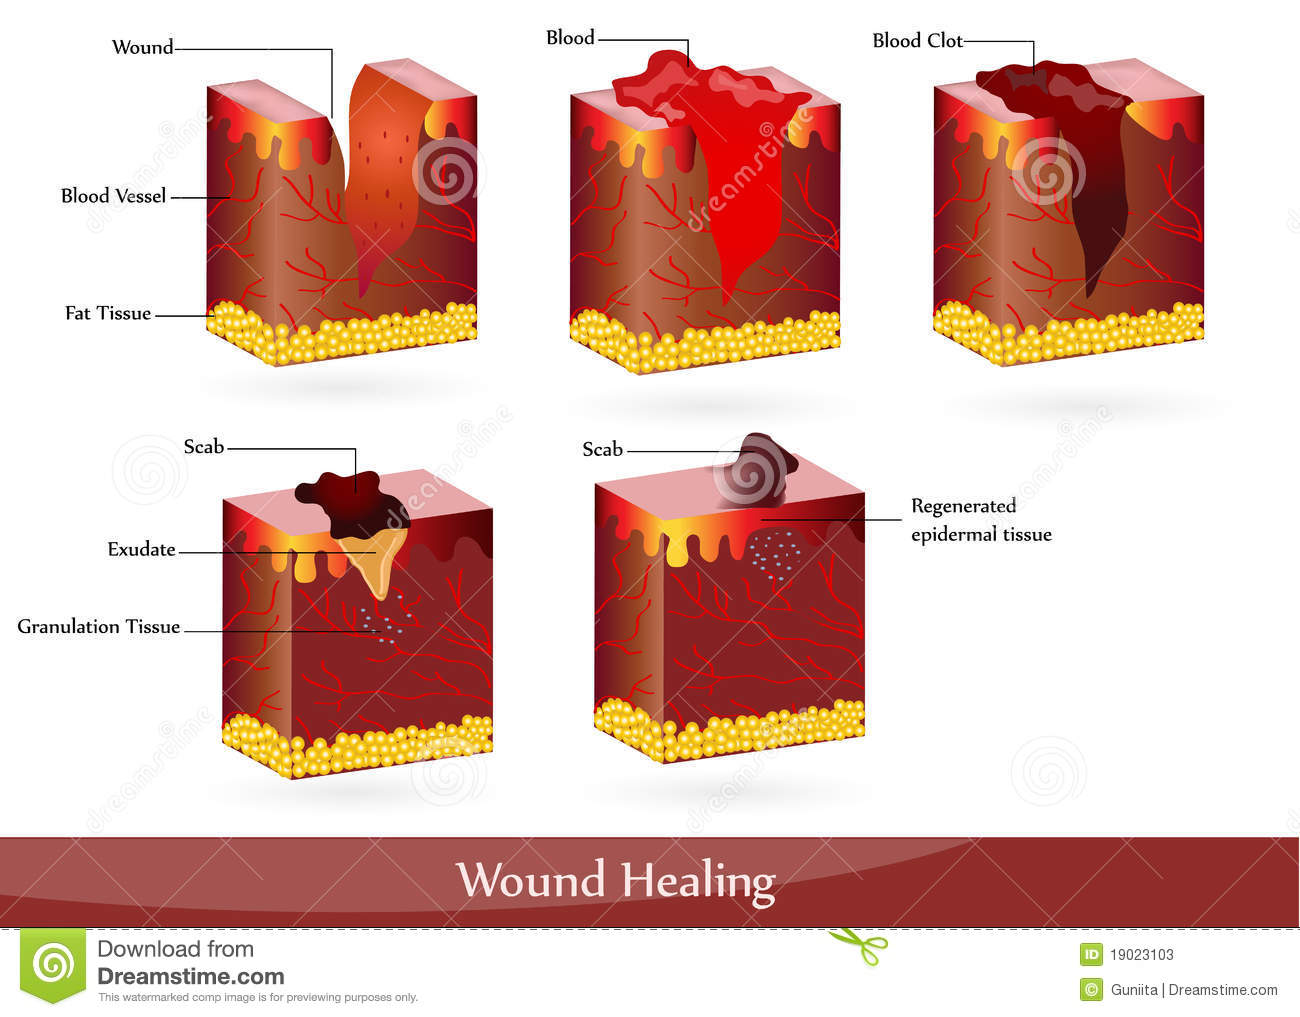 hight resolution of the process of wound healing illustration showing skin after injury appears blood then blood clot then scab